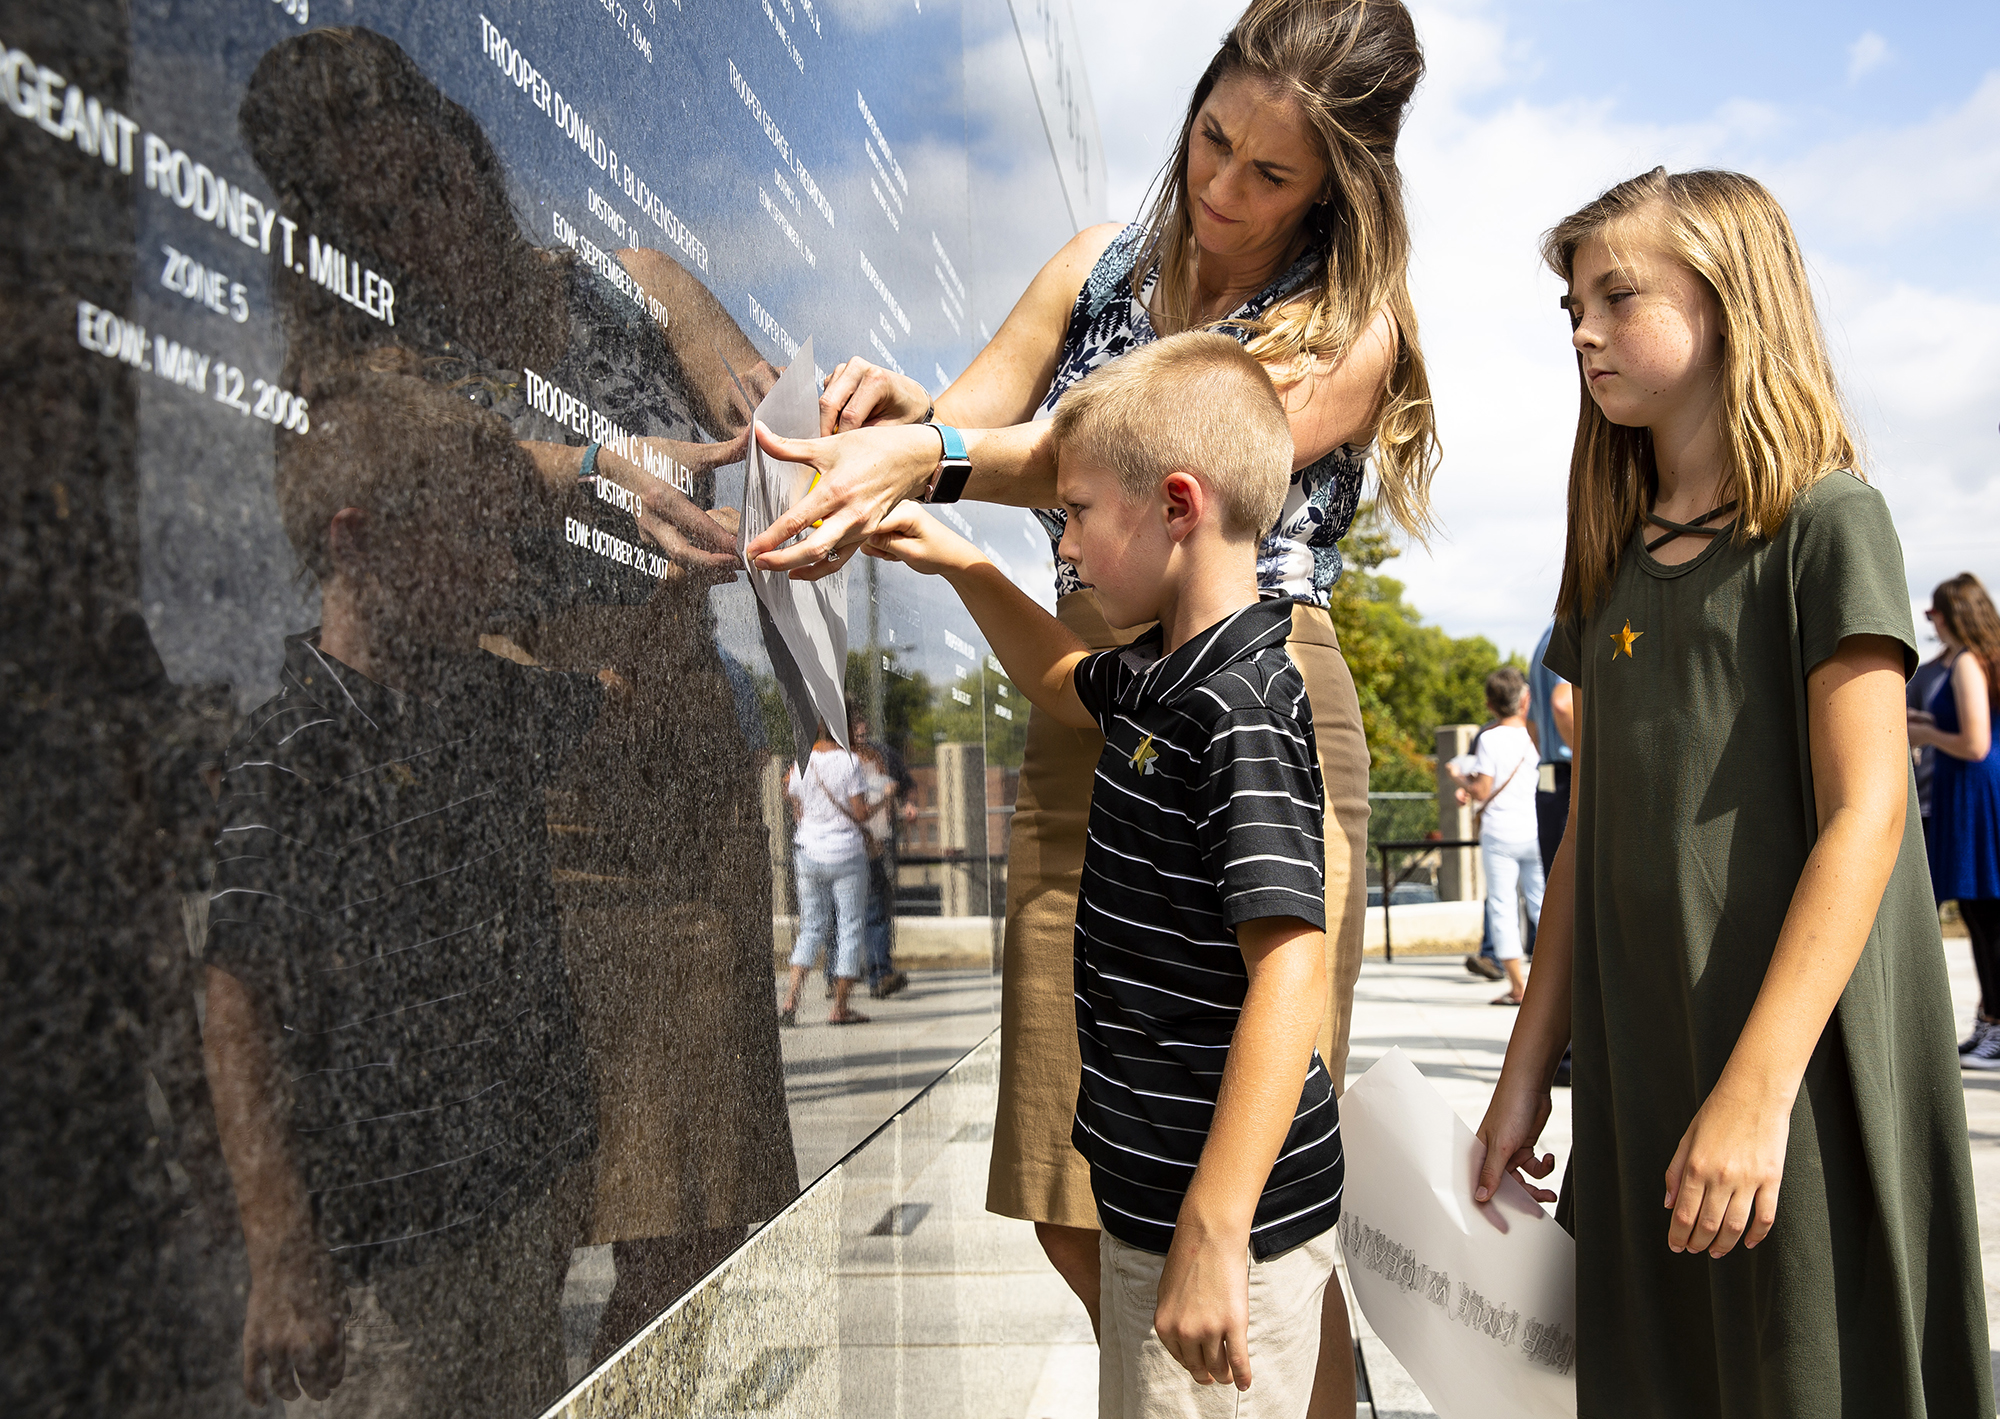 Sarah Deatherage-Steele, the widow of Trooper Kyle Deatherage, and her children, Camden, 6, and Kaylee, 10, create a rubbing of her late husband's name that is etched on a memorial wall at the Illinois State Police Memorial Park following a dedication ceremony Tuesday, Oct. 2, 2018 at 615 W. Lawrence in Springfield, Ill. Deatherage was struck and killed by a truck while makng a traffic stop in 2012 on Interstate 55 near Litchfield. [Rich Saal/The State Journal-Register]